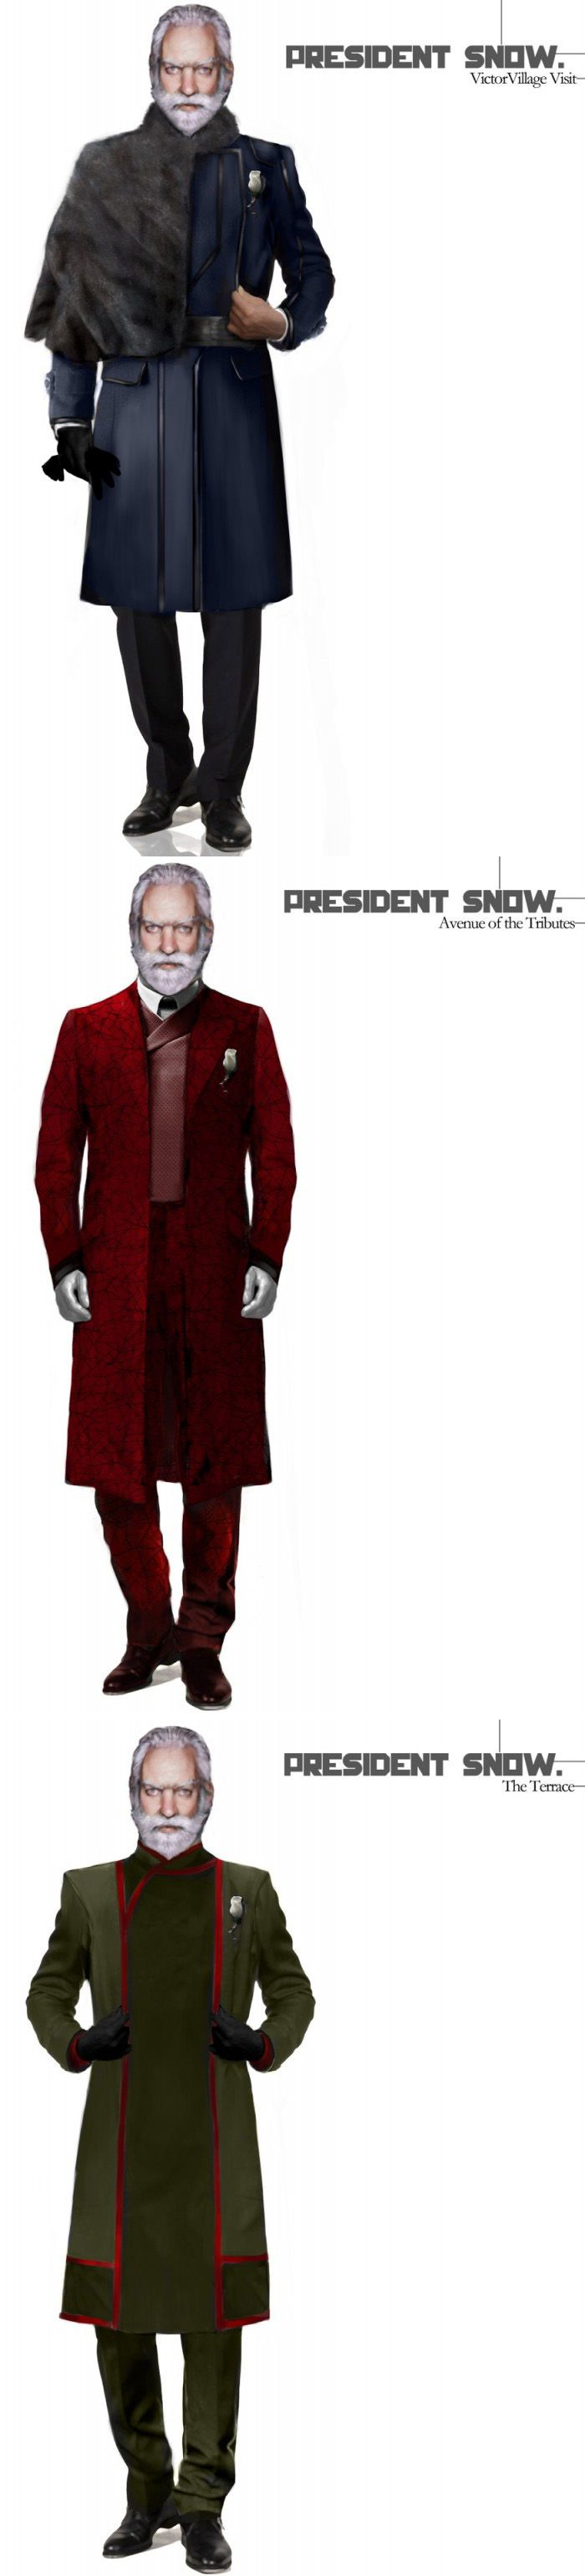 President Snow costume designs by Trish Summerville